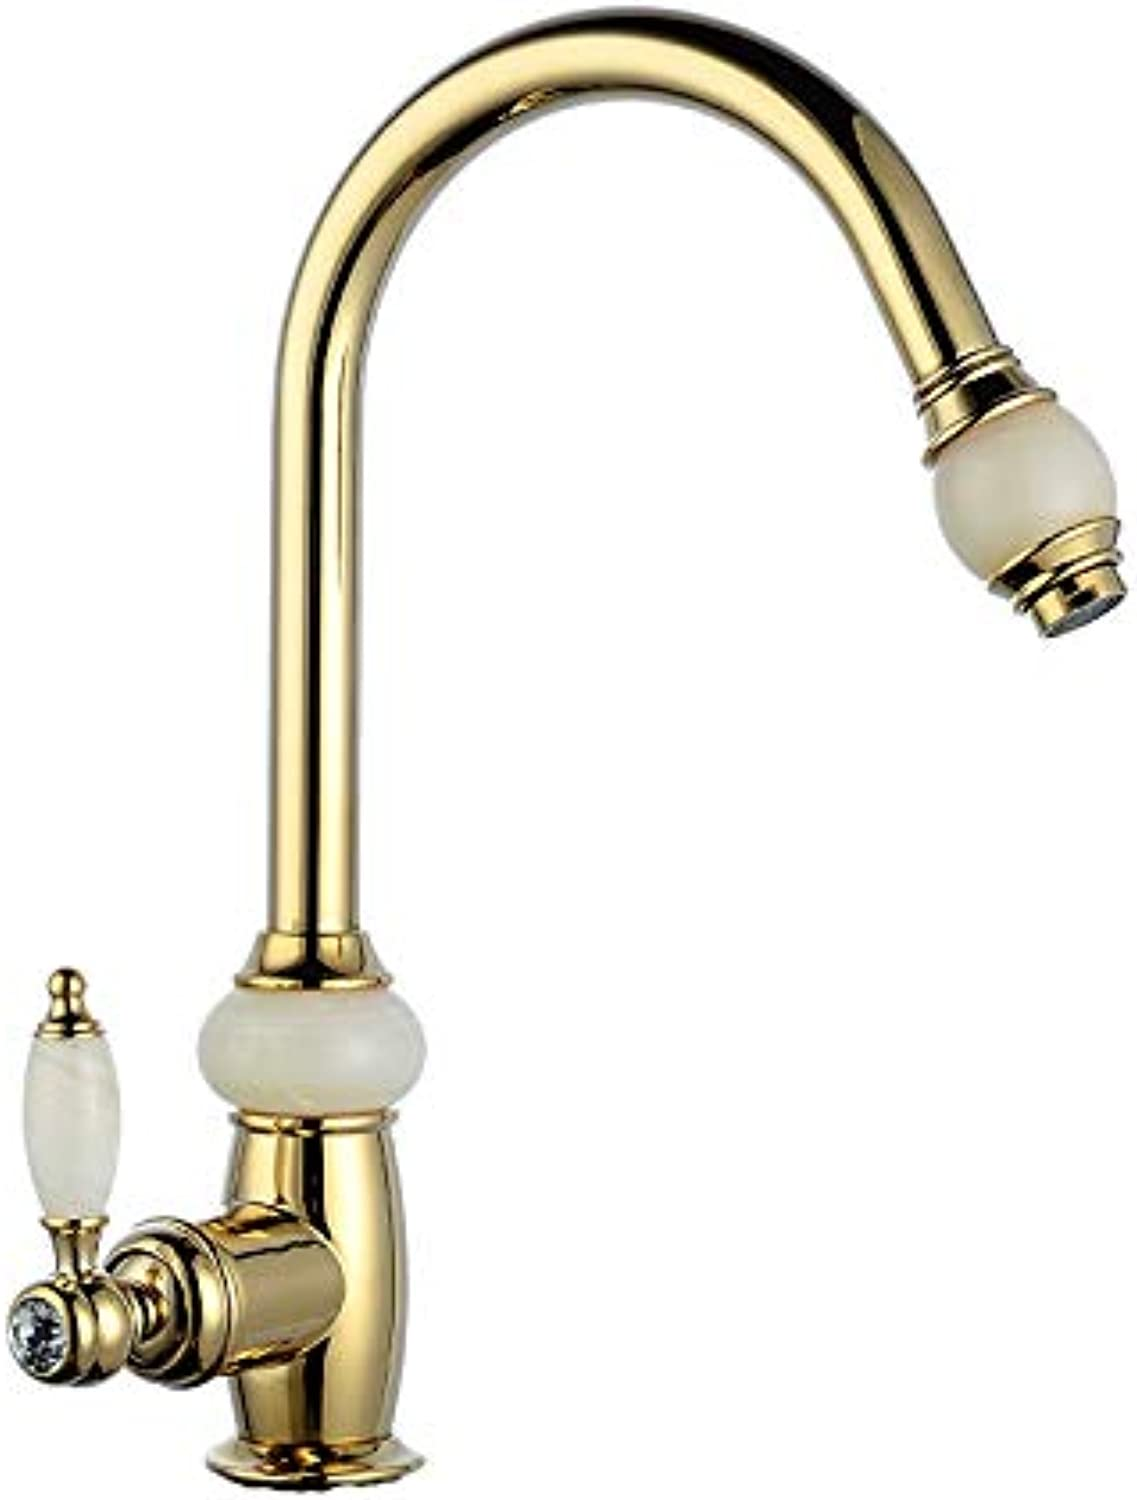 Natural Jade Hot and Cold Faucet Kitchen Pull Faucet gold